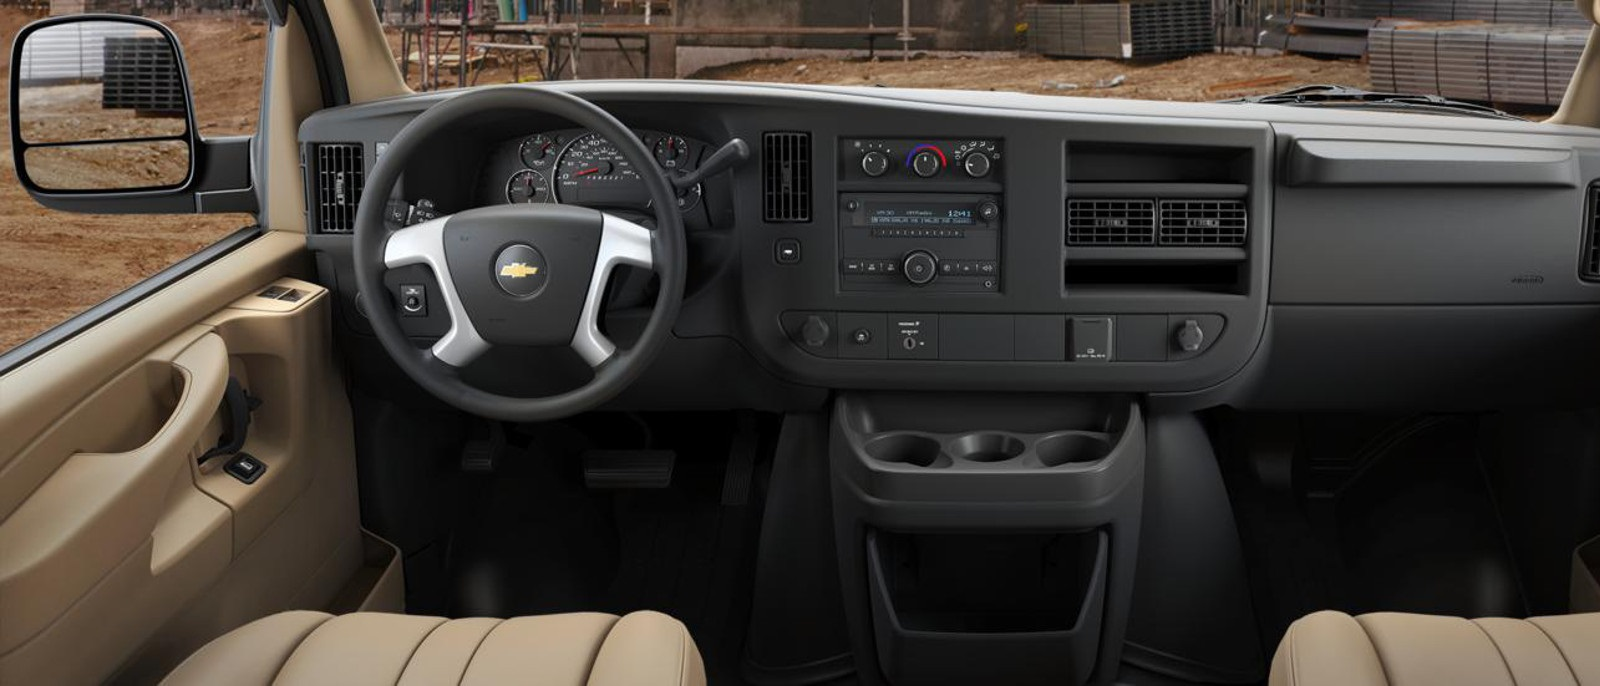 2016 Chevy Express 2500 Interior